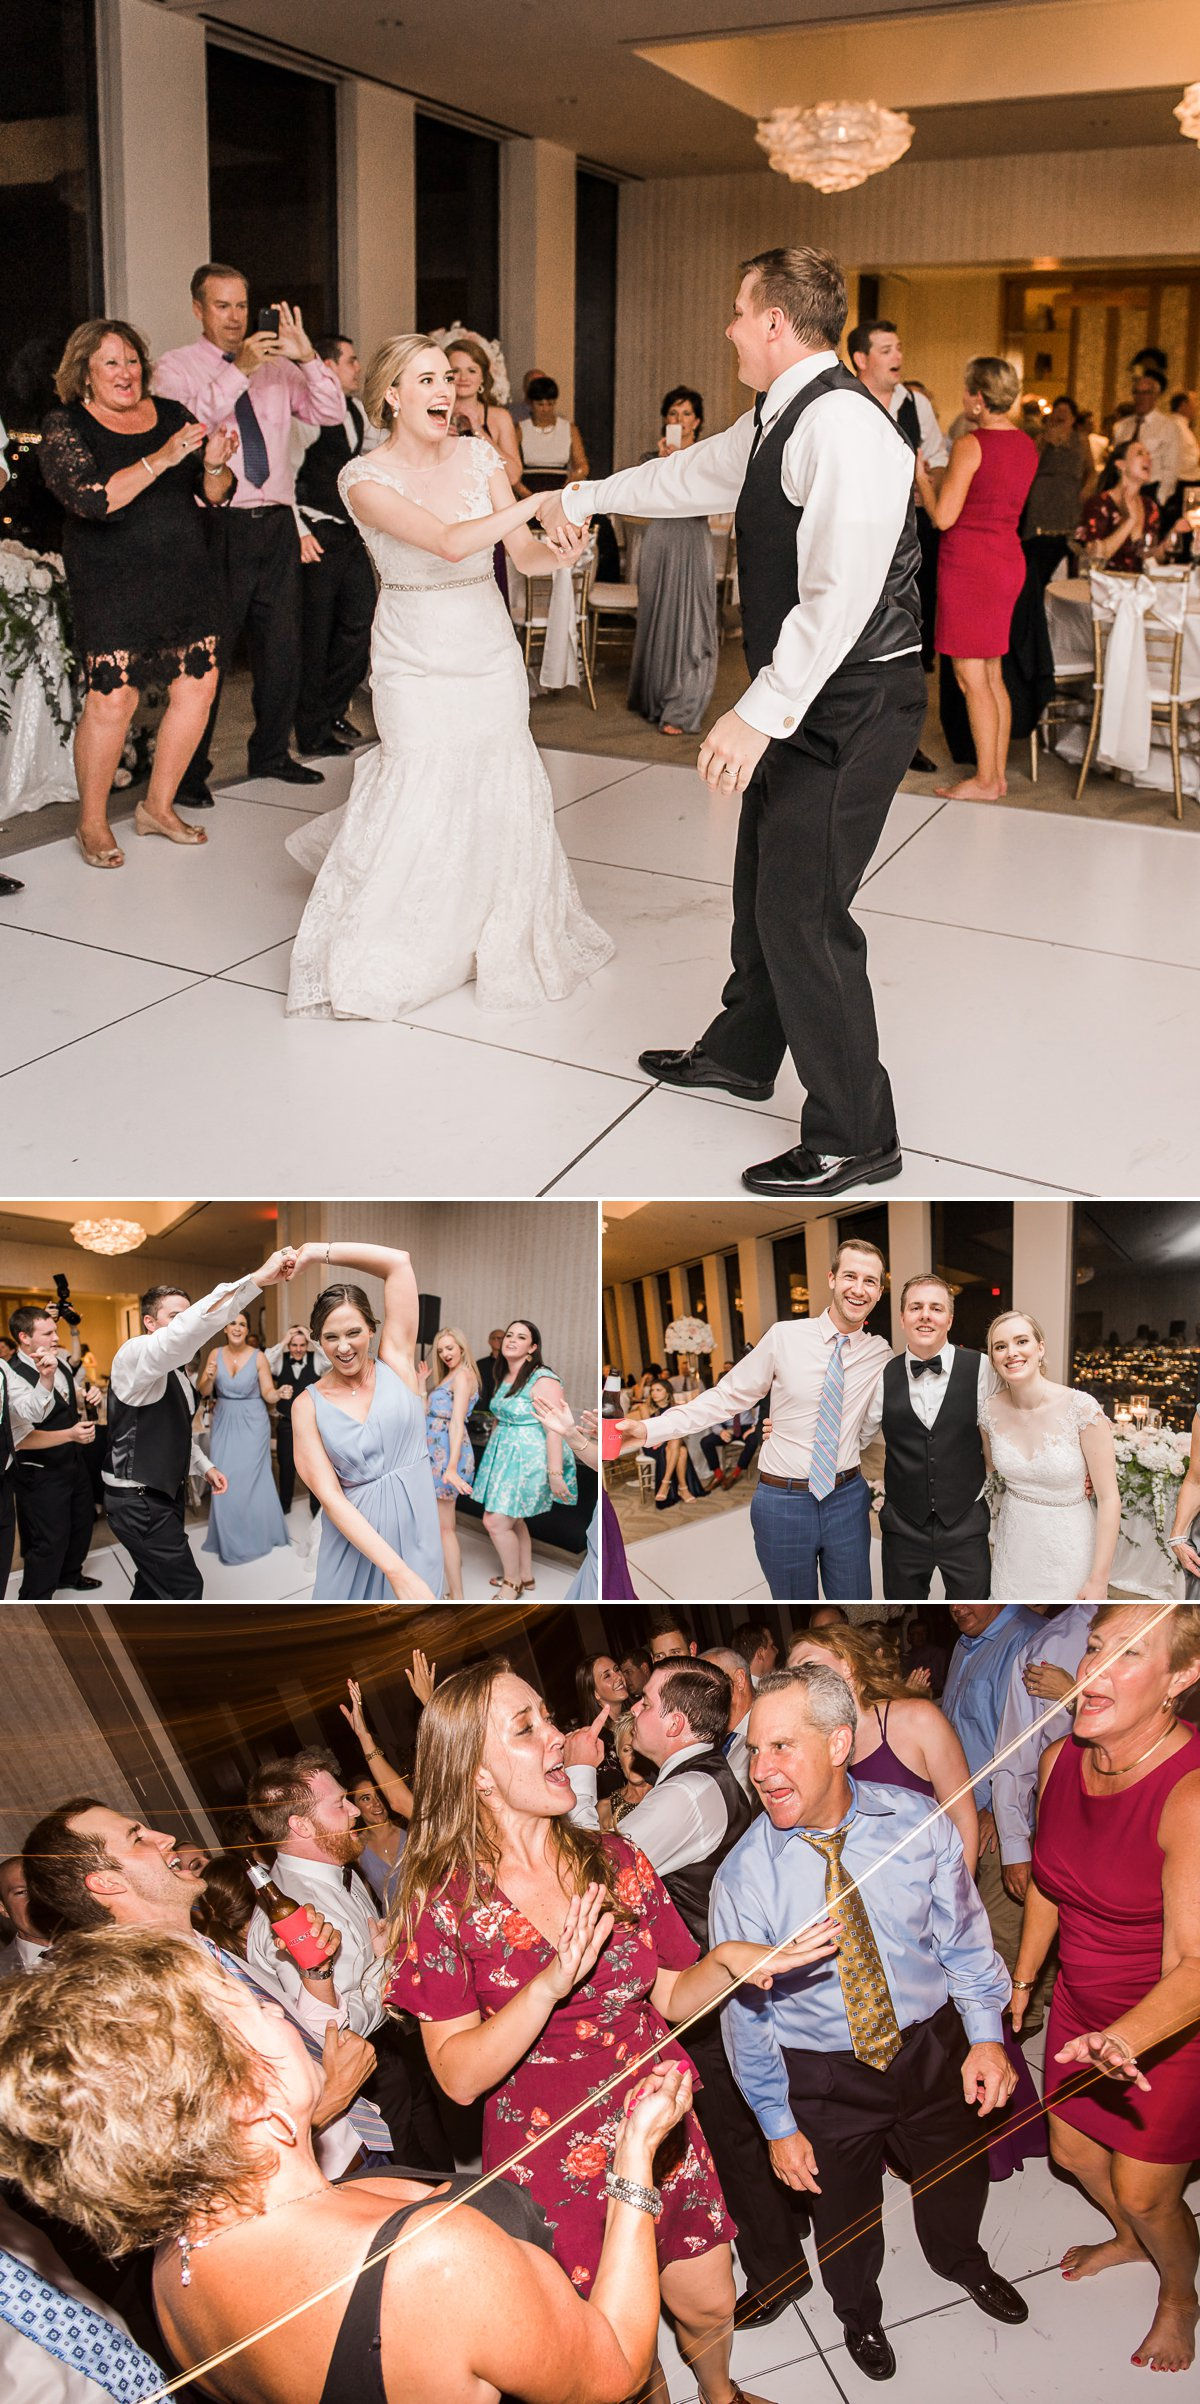 The Houston Club Wedding Dance Floor